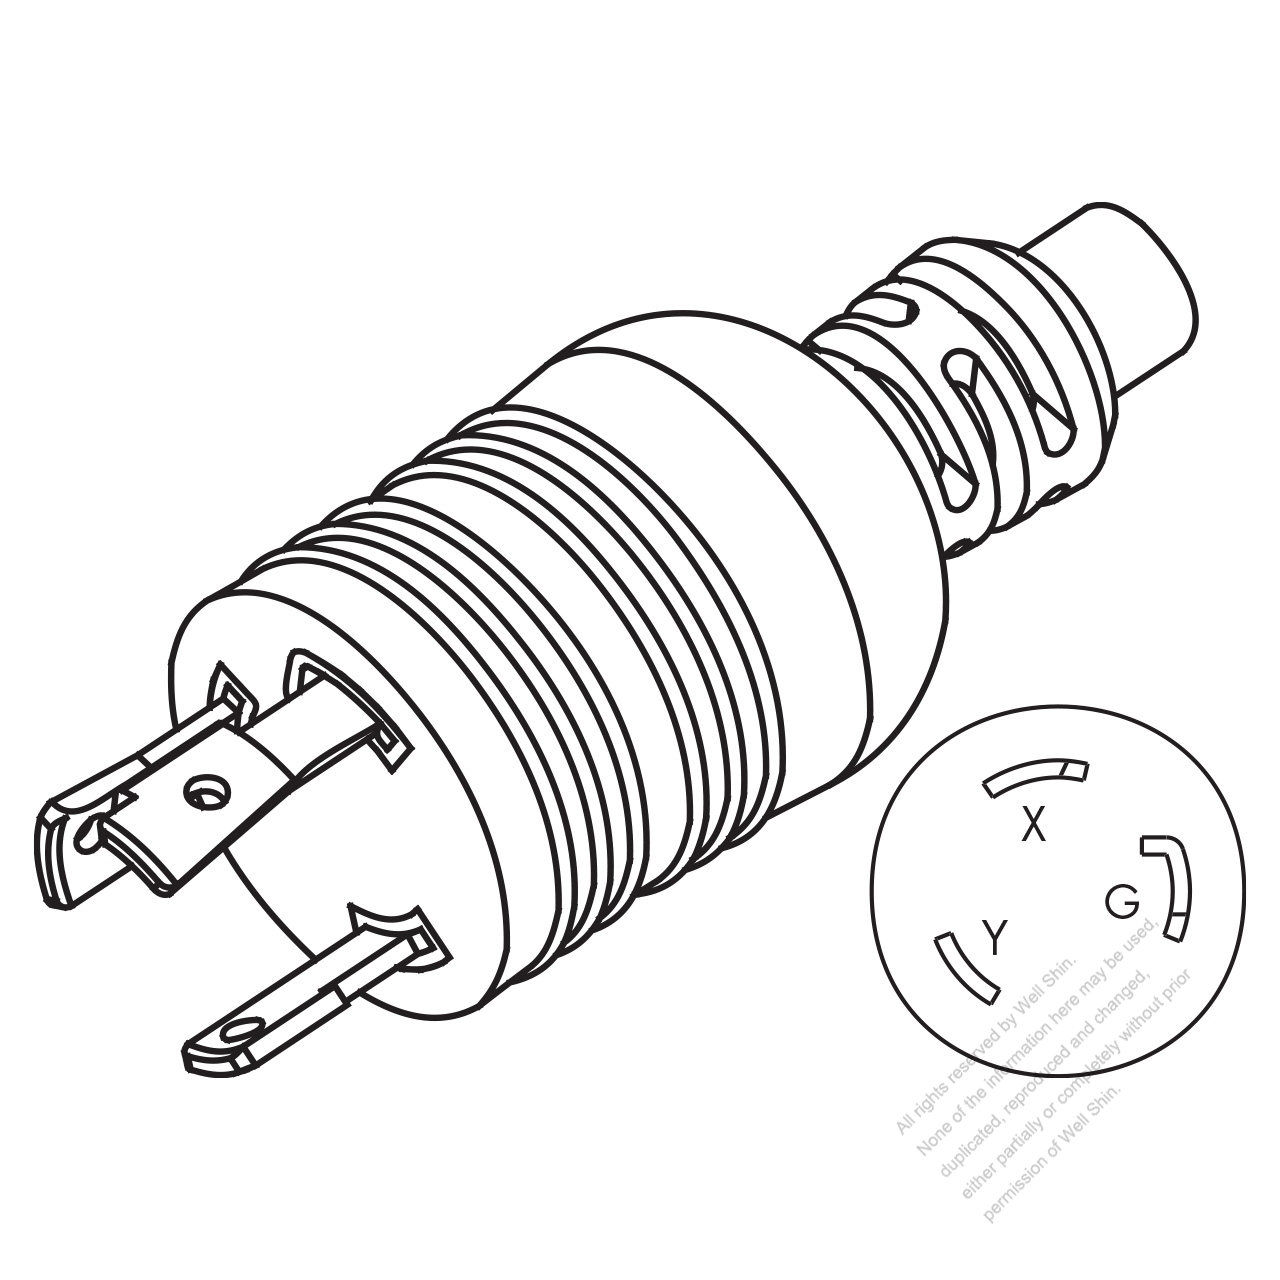 Bbe71656ac26322c10dzz8 3 wire replacement male electrical plug 8 on 3 wire replacement male electrical plug